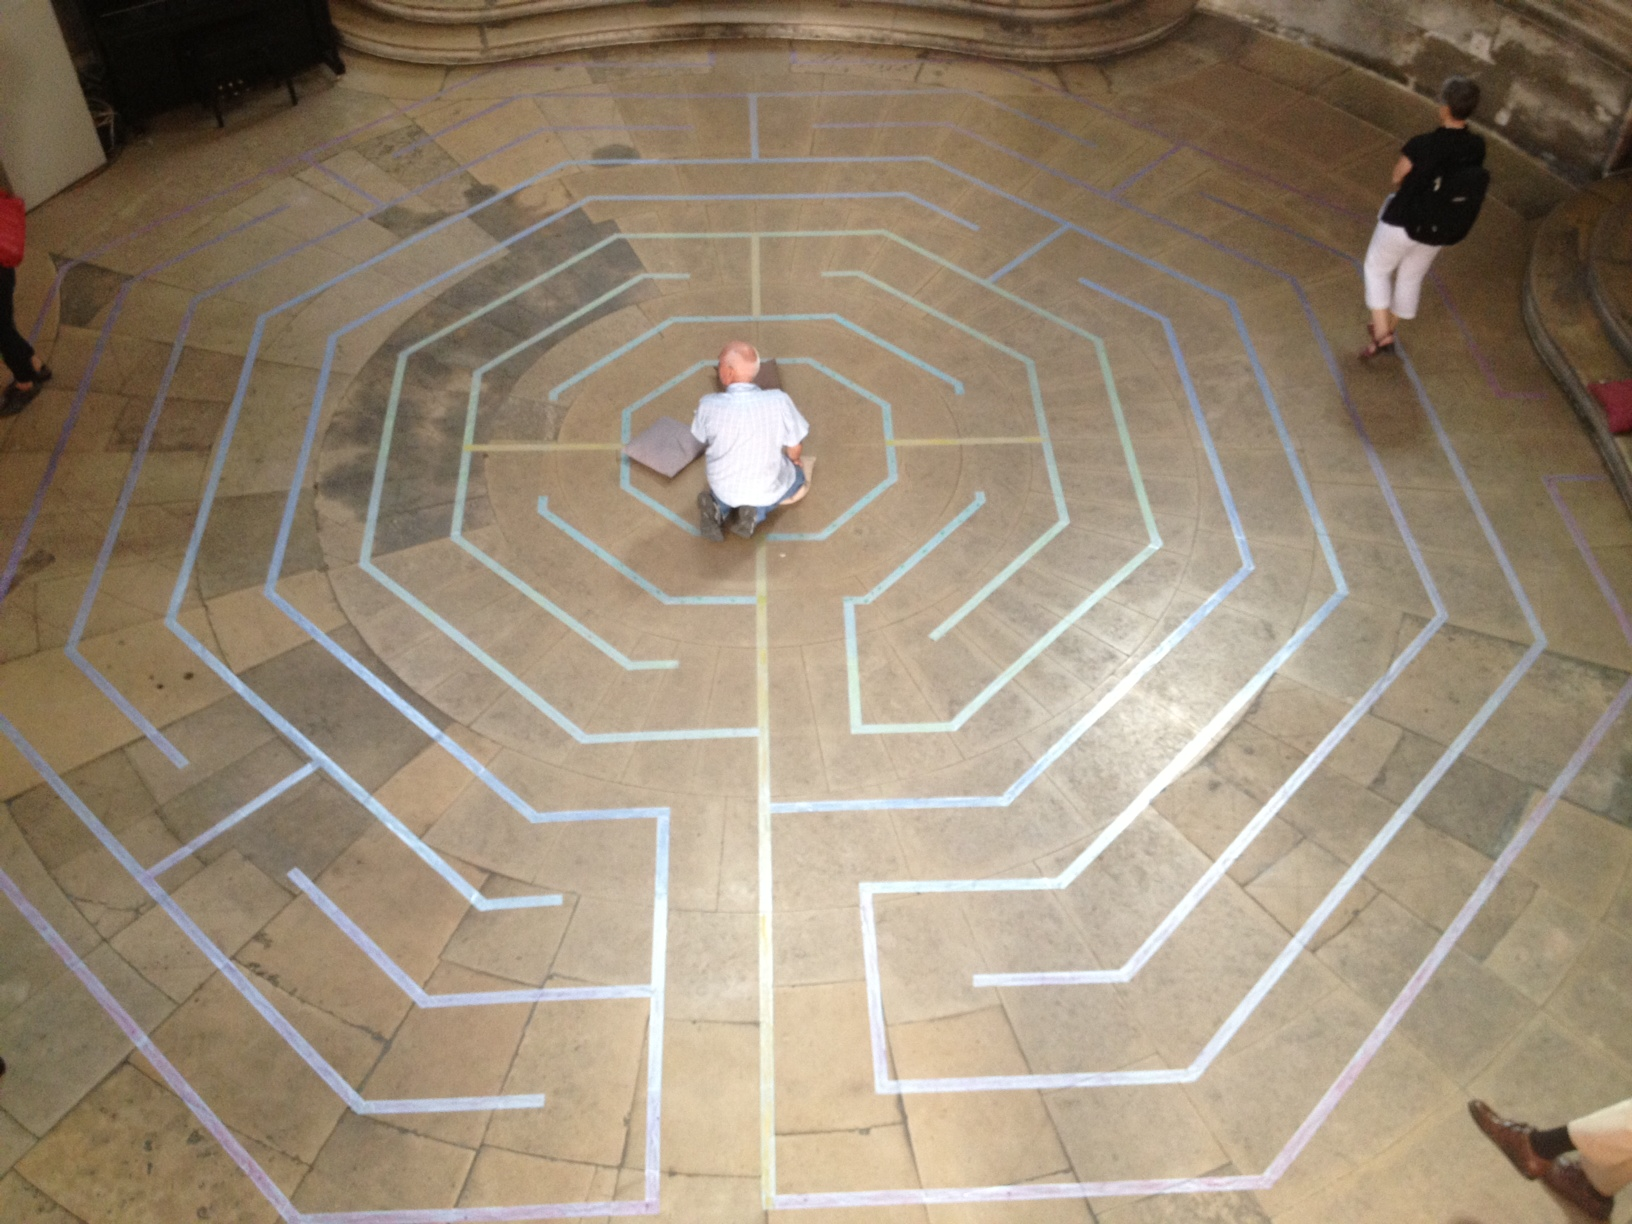 Labyrinth as interactive prayer space